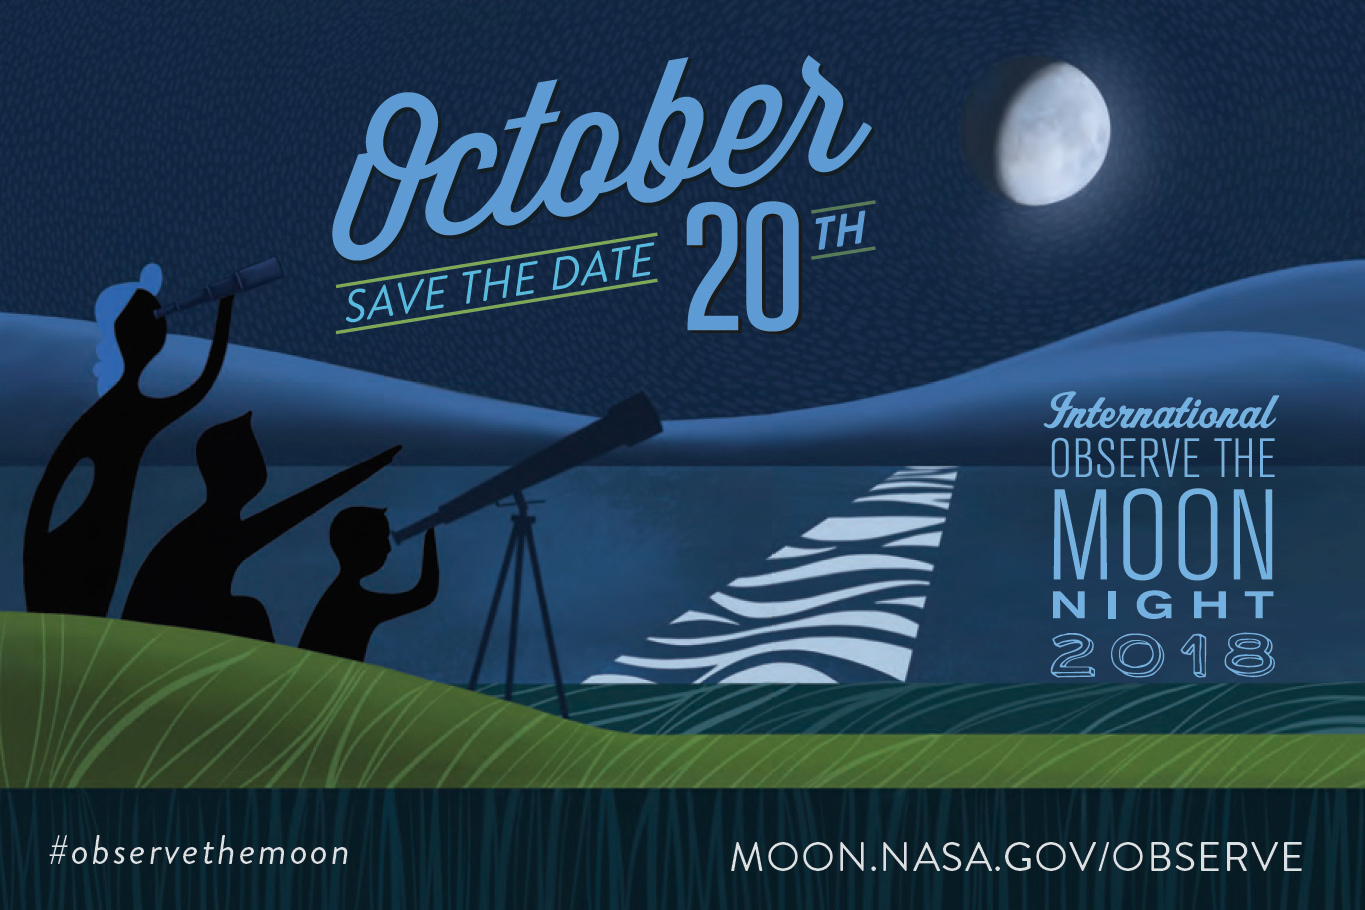 International Observe the Moon Night 2018 graphic